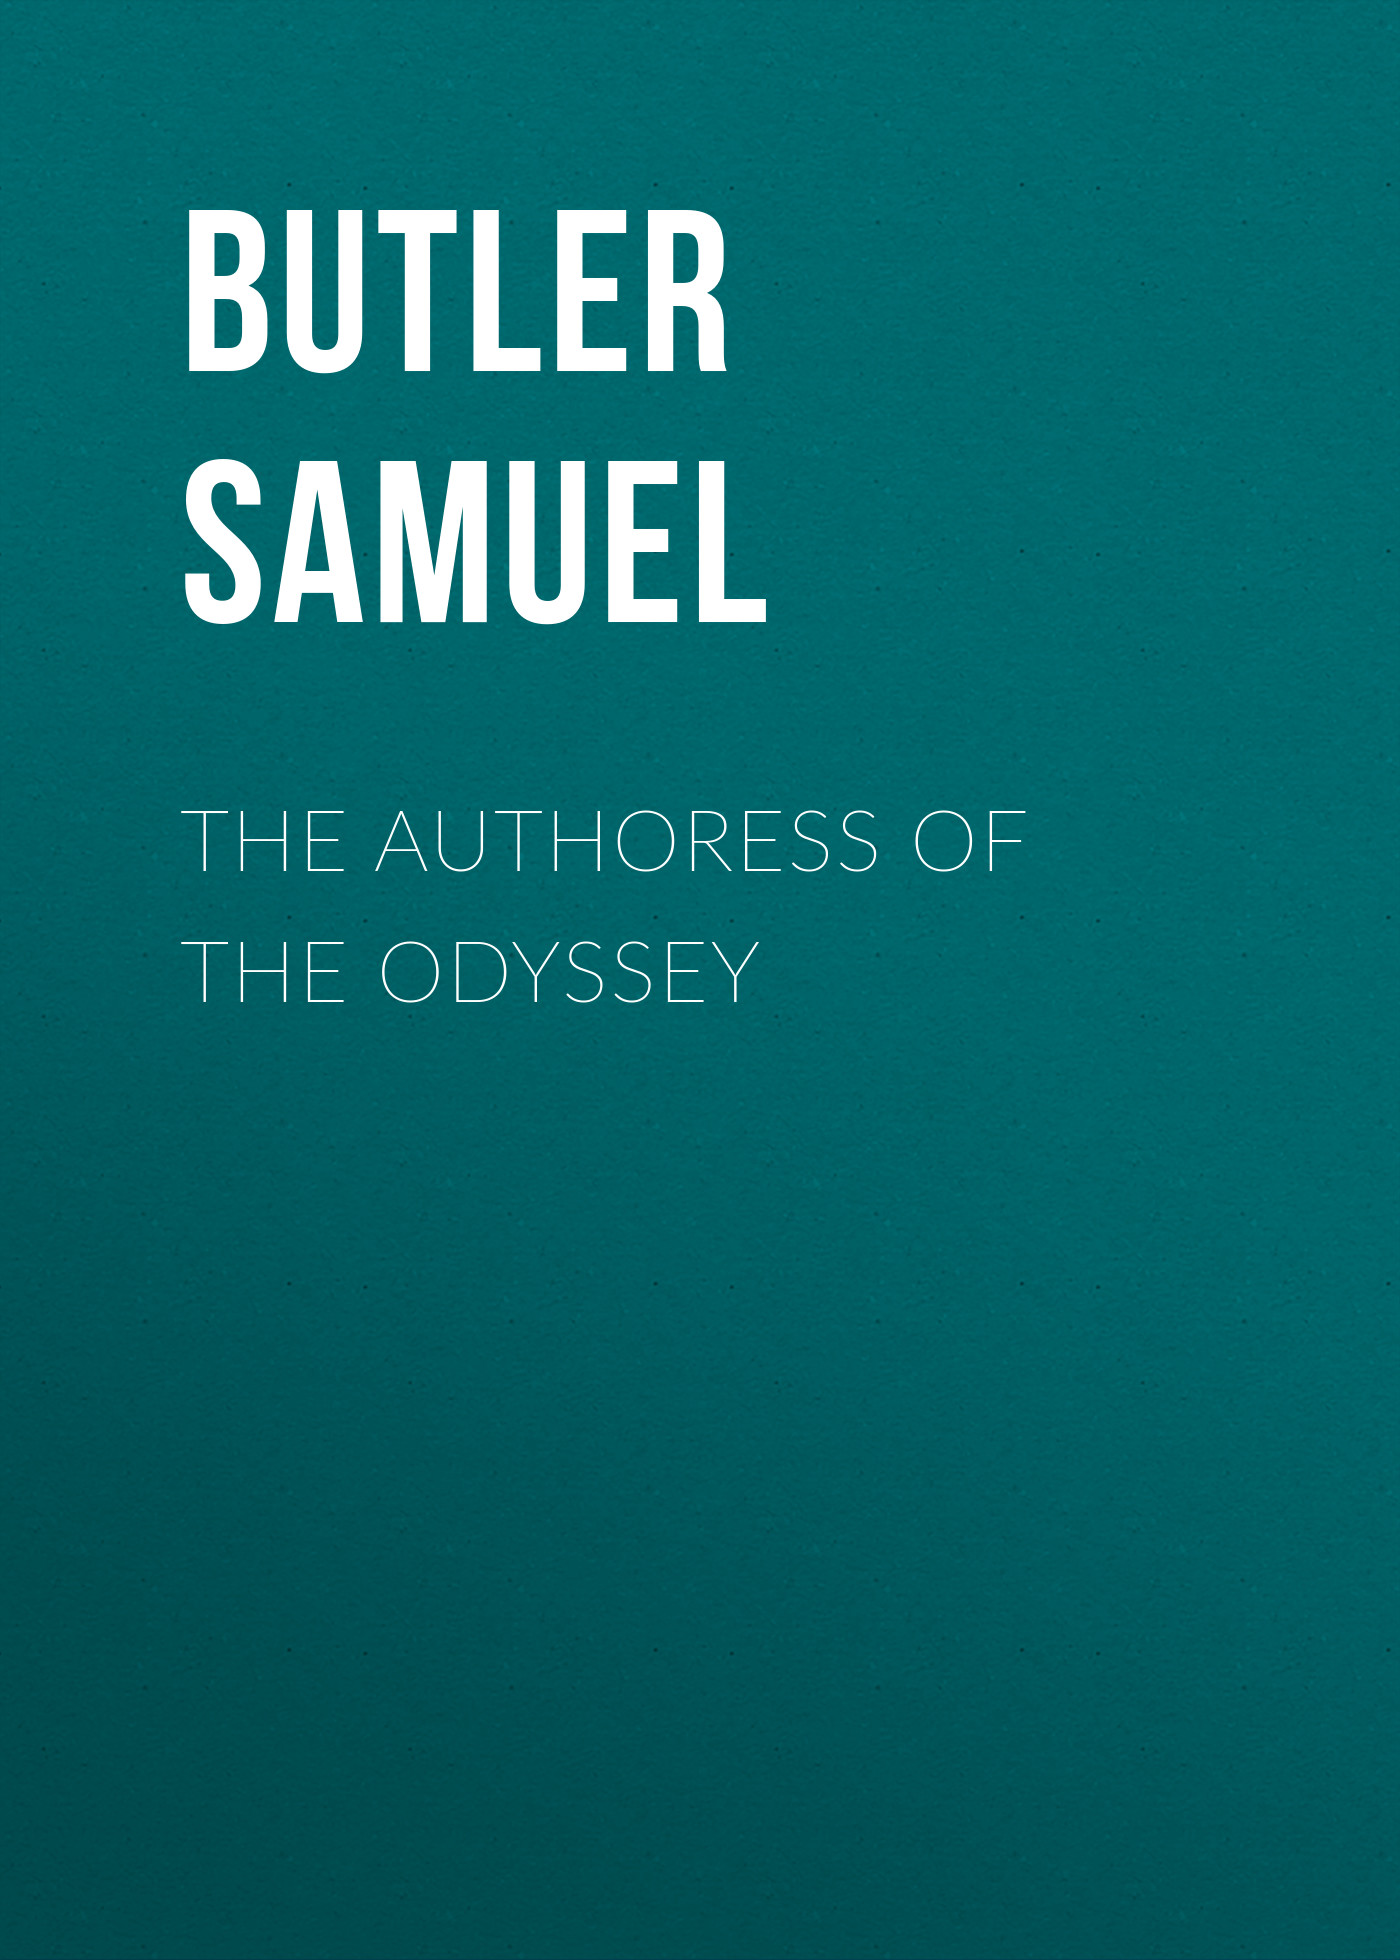 Butler Samuel The Authoress of the Odyssey